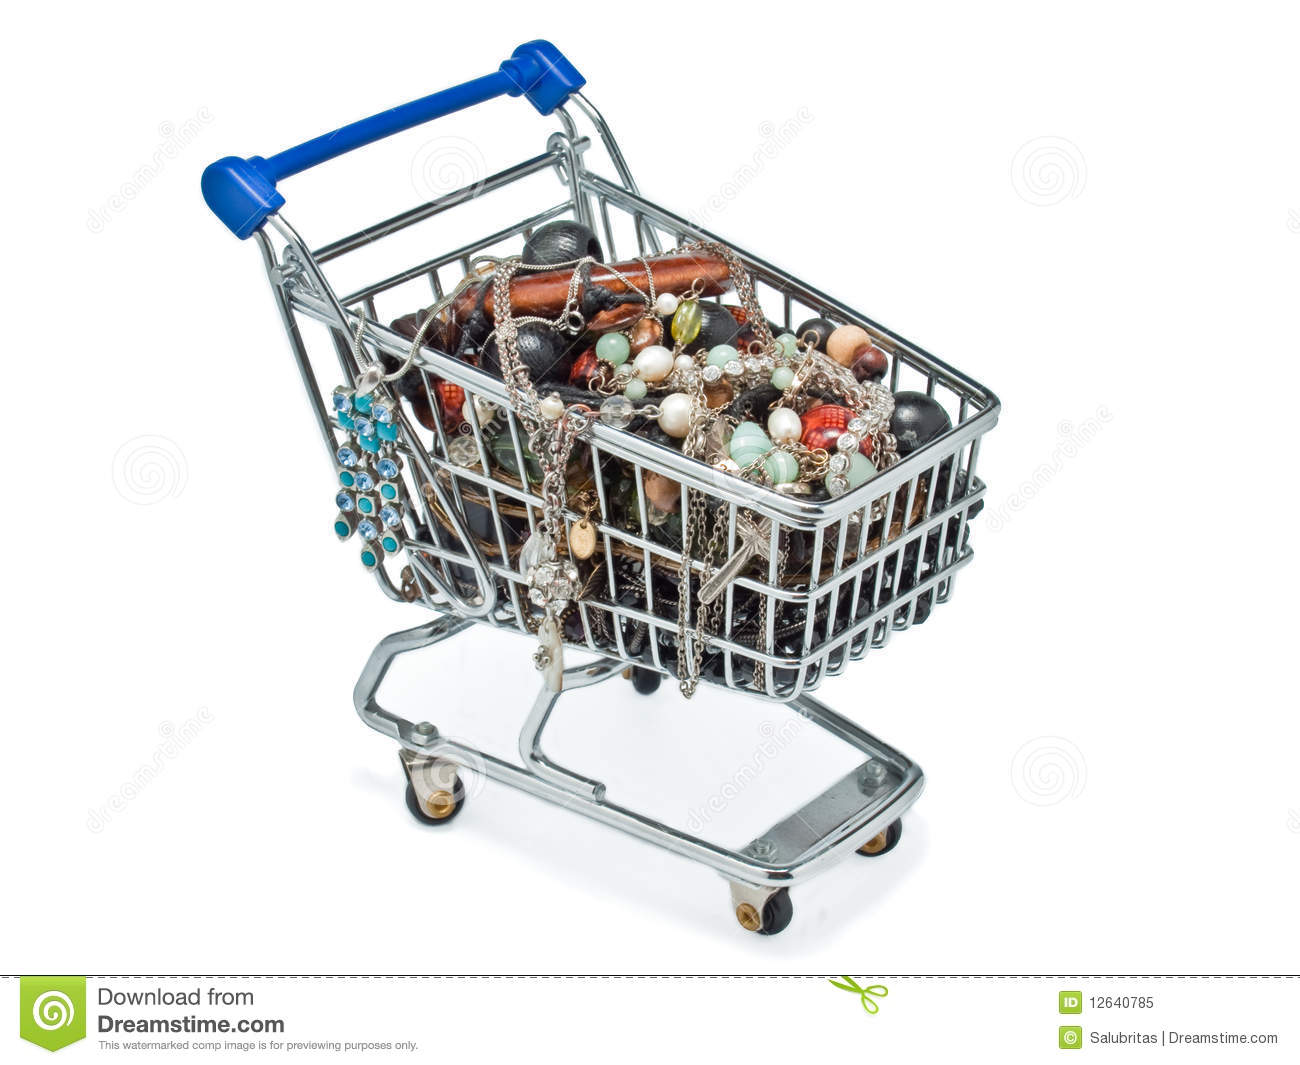 ... similar stock images of ` Shopping cart full of costume jewellery